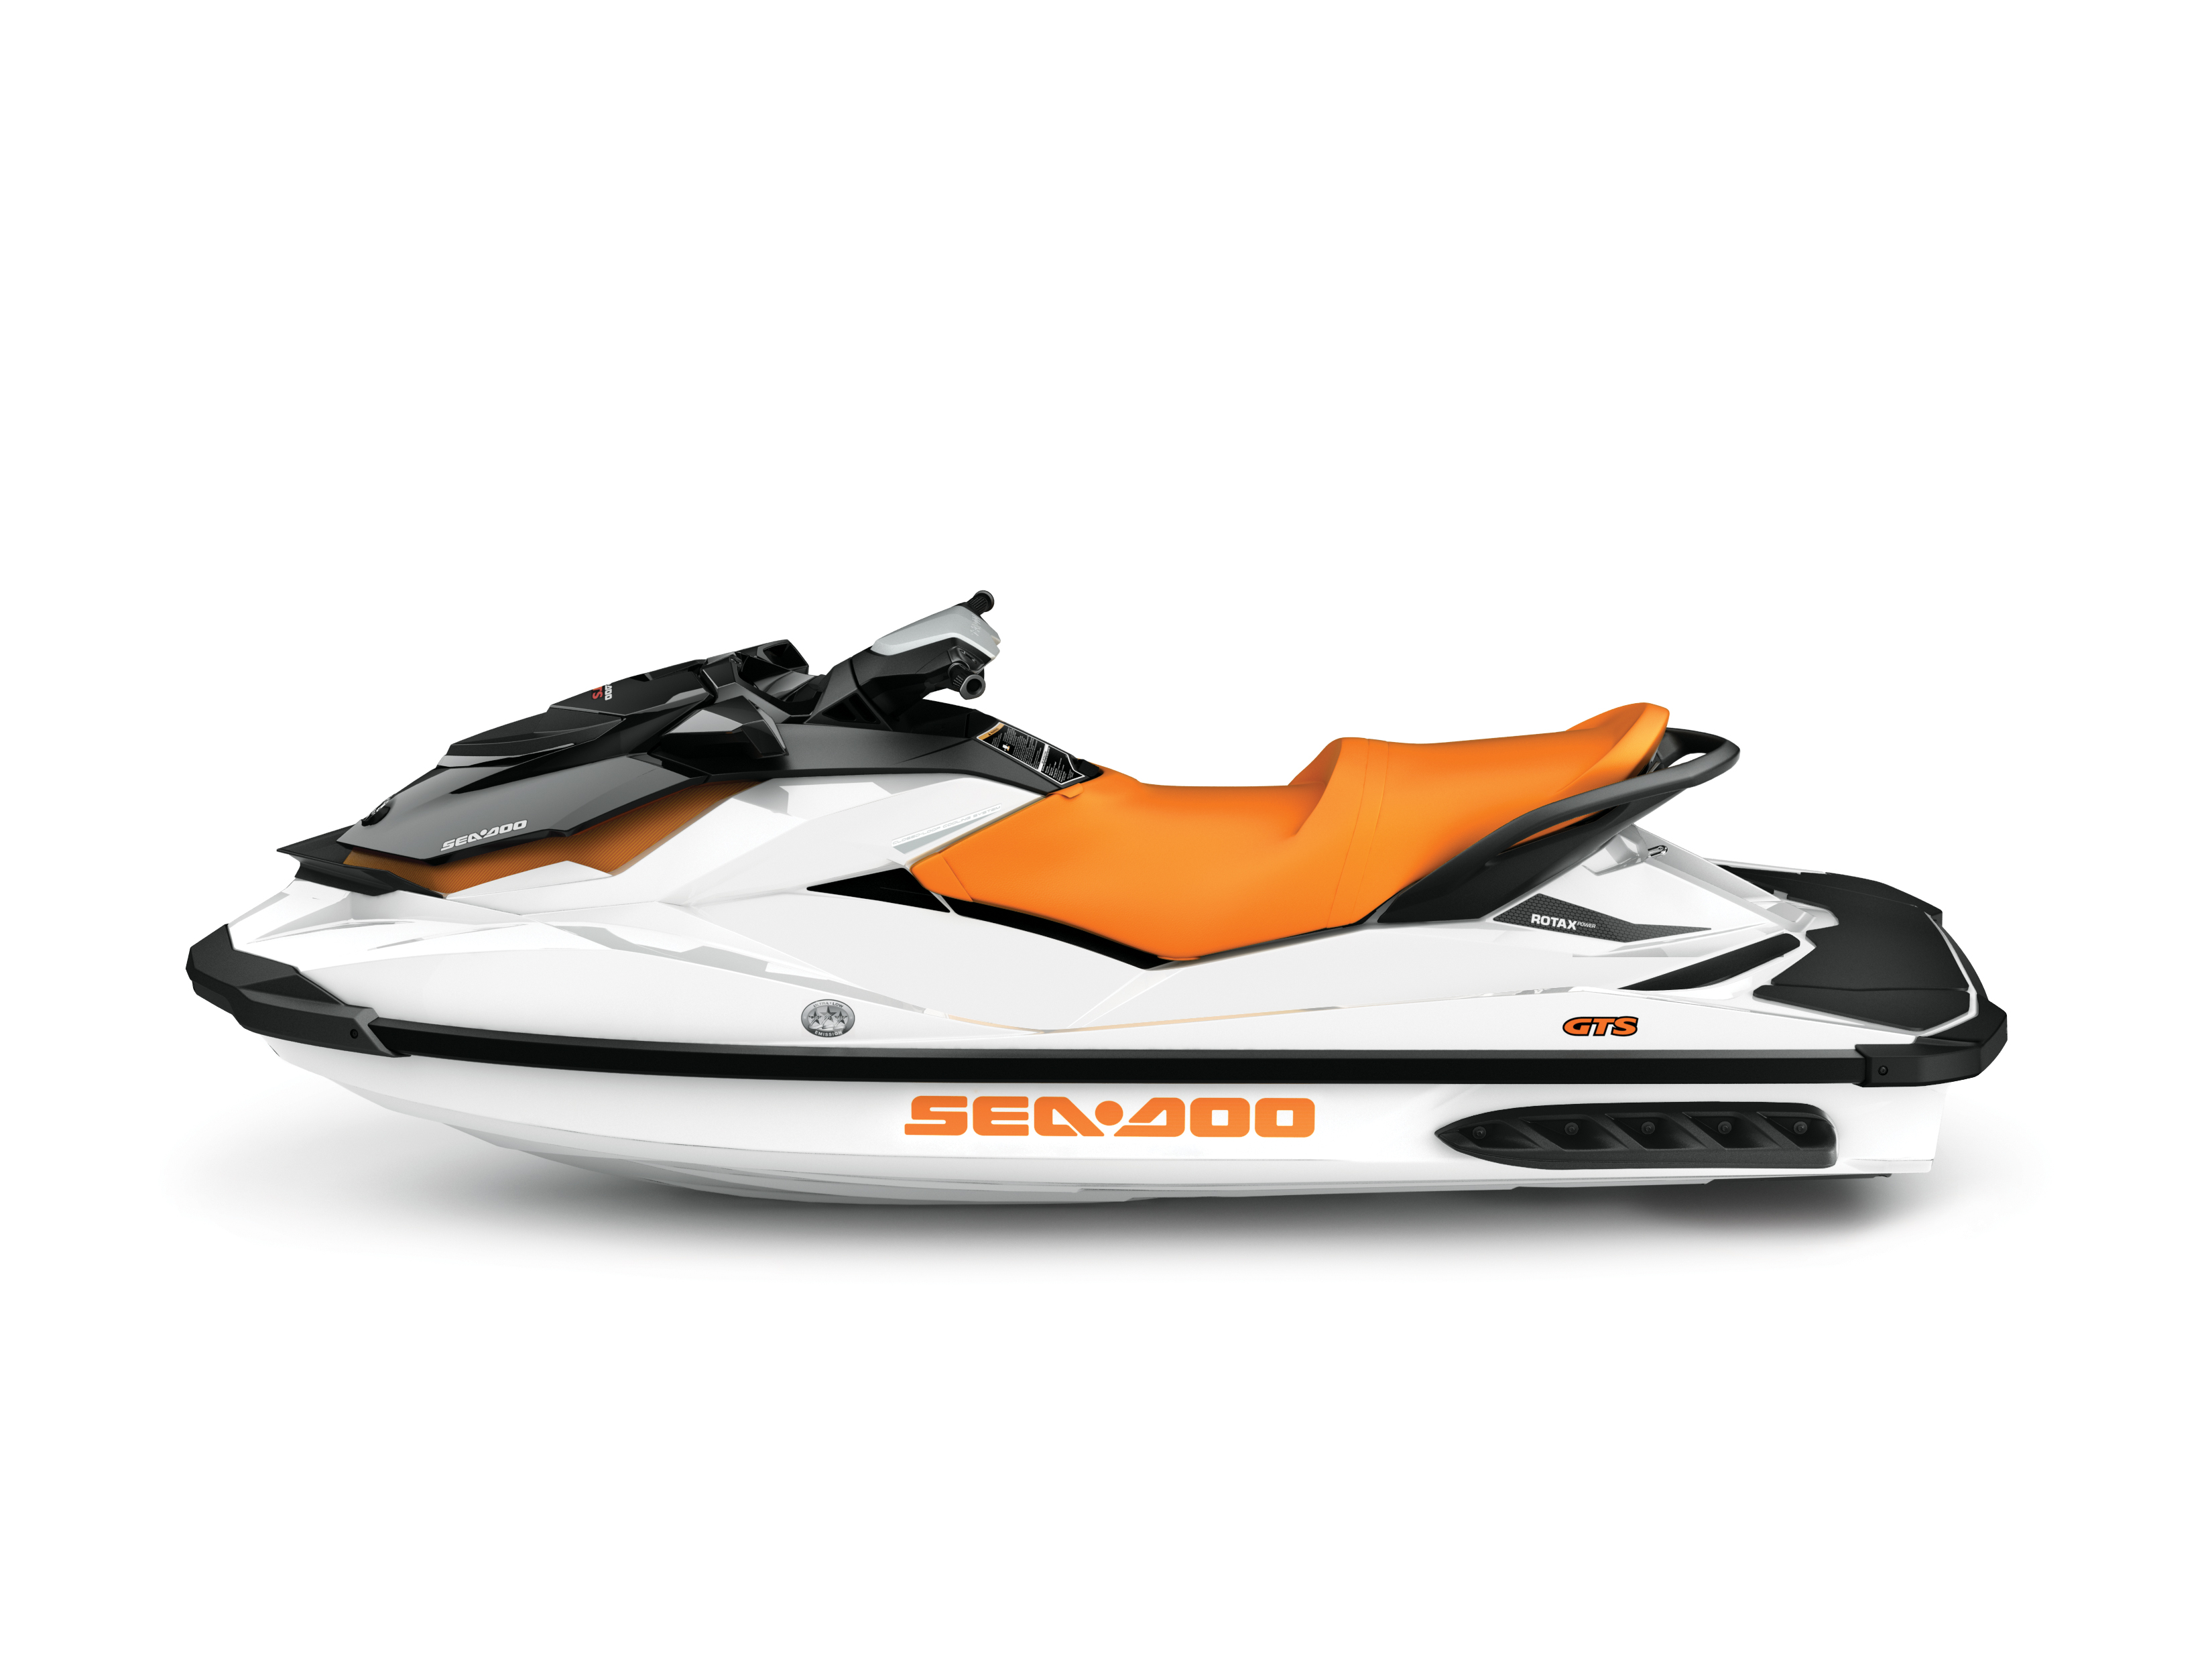 ... 2014 SEA-DOO GTS 130 RENTAL_STUDIO-PROFILE